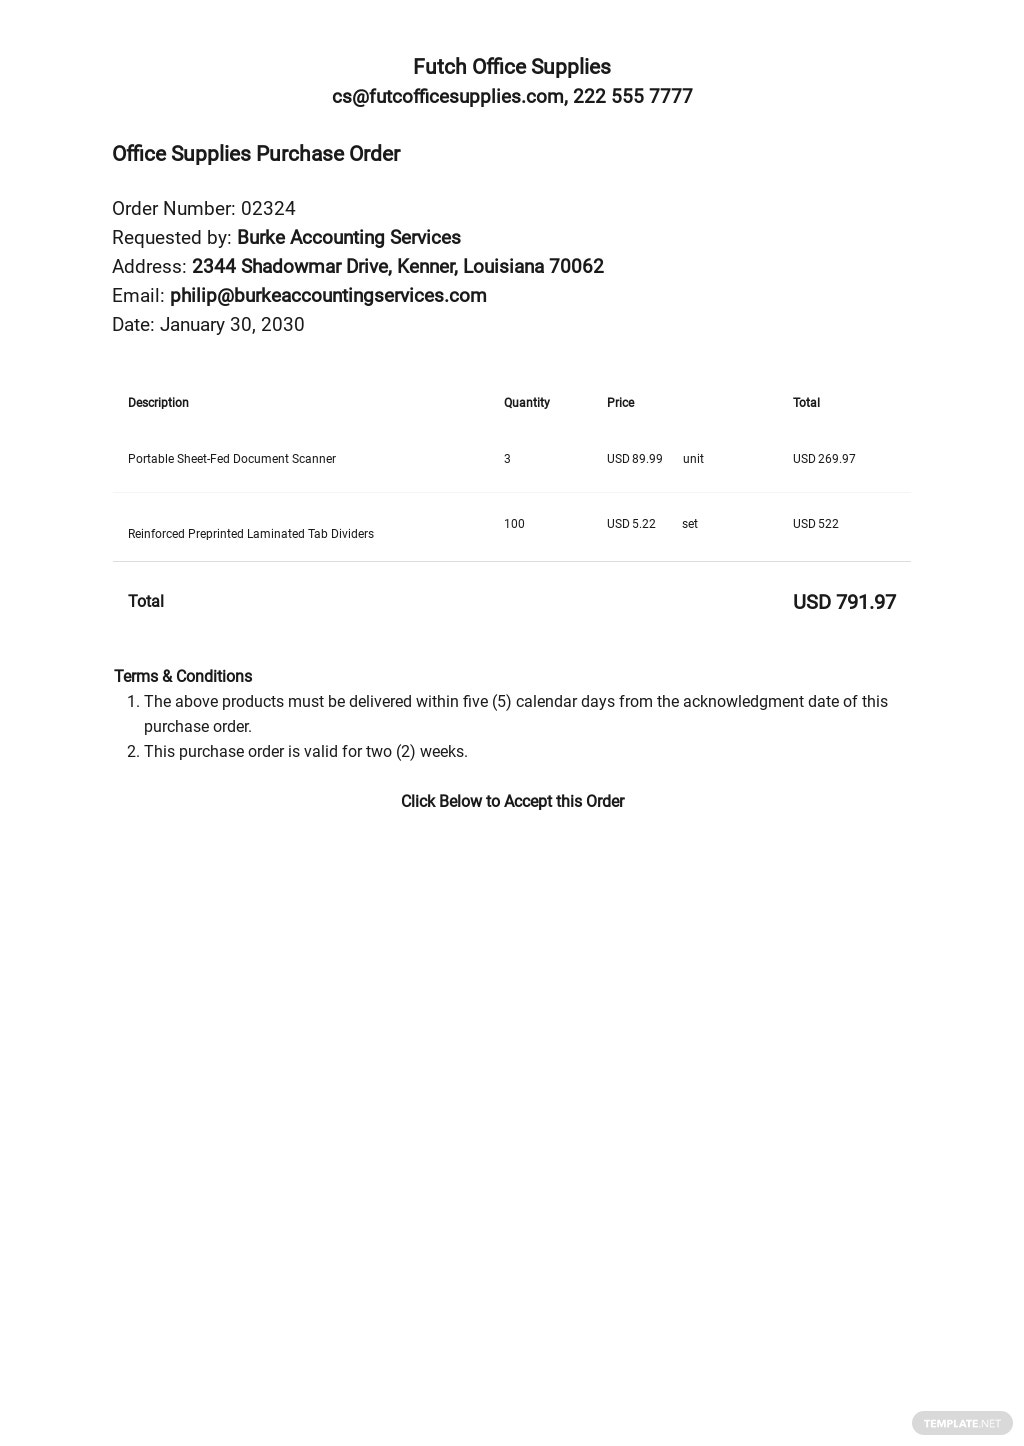 Order Confirmation Template.jpe